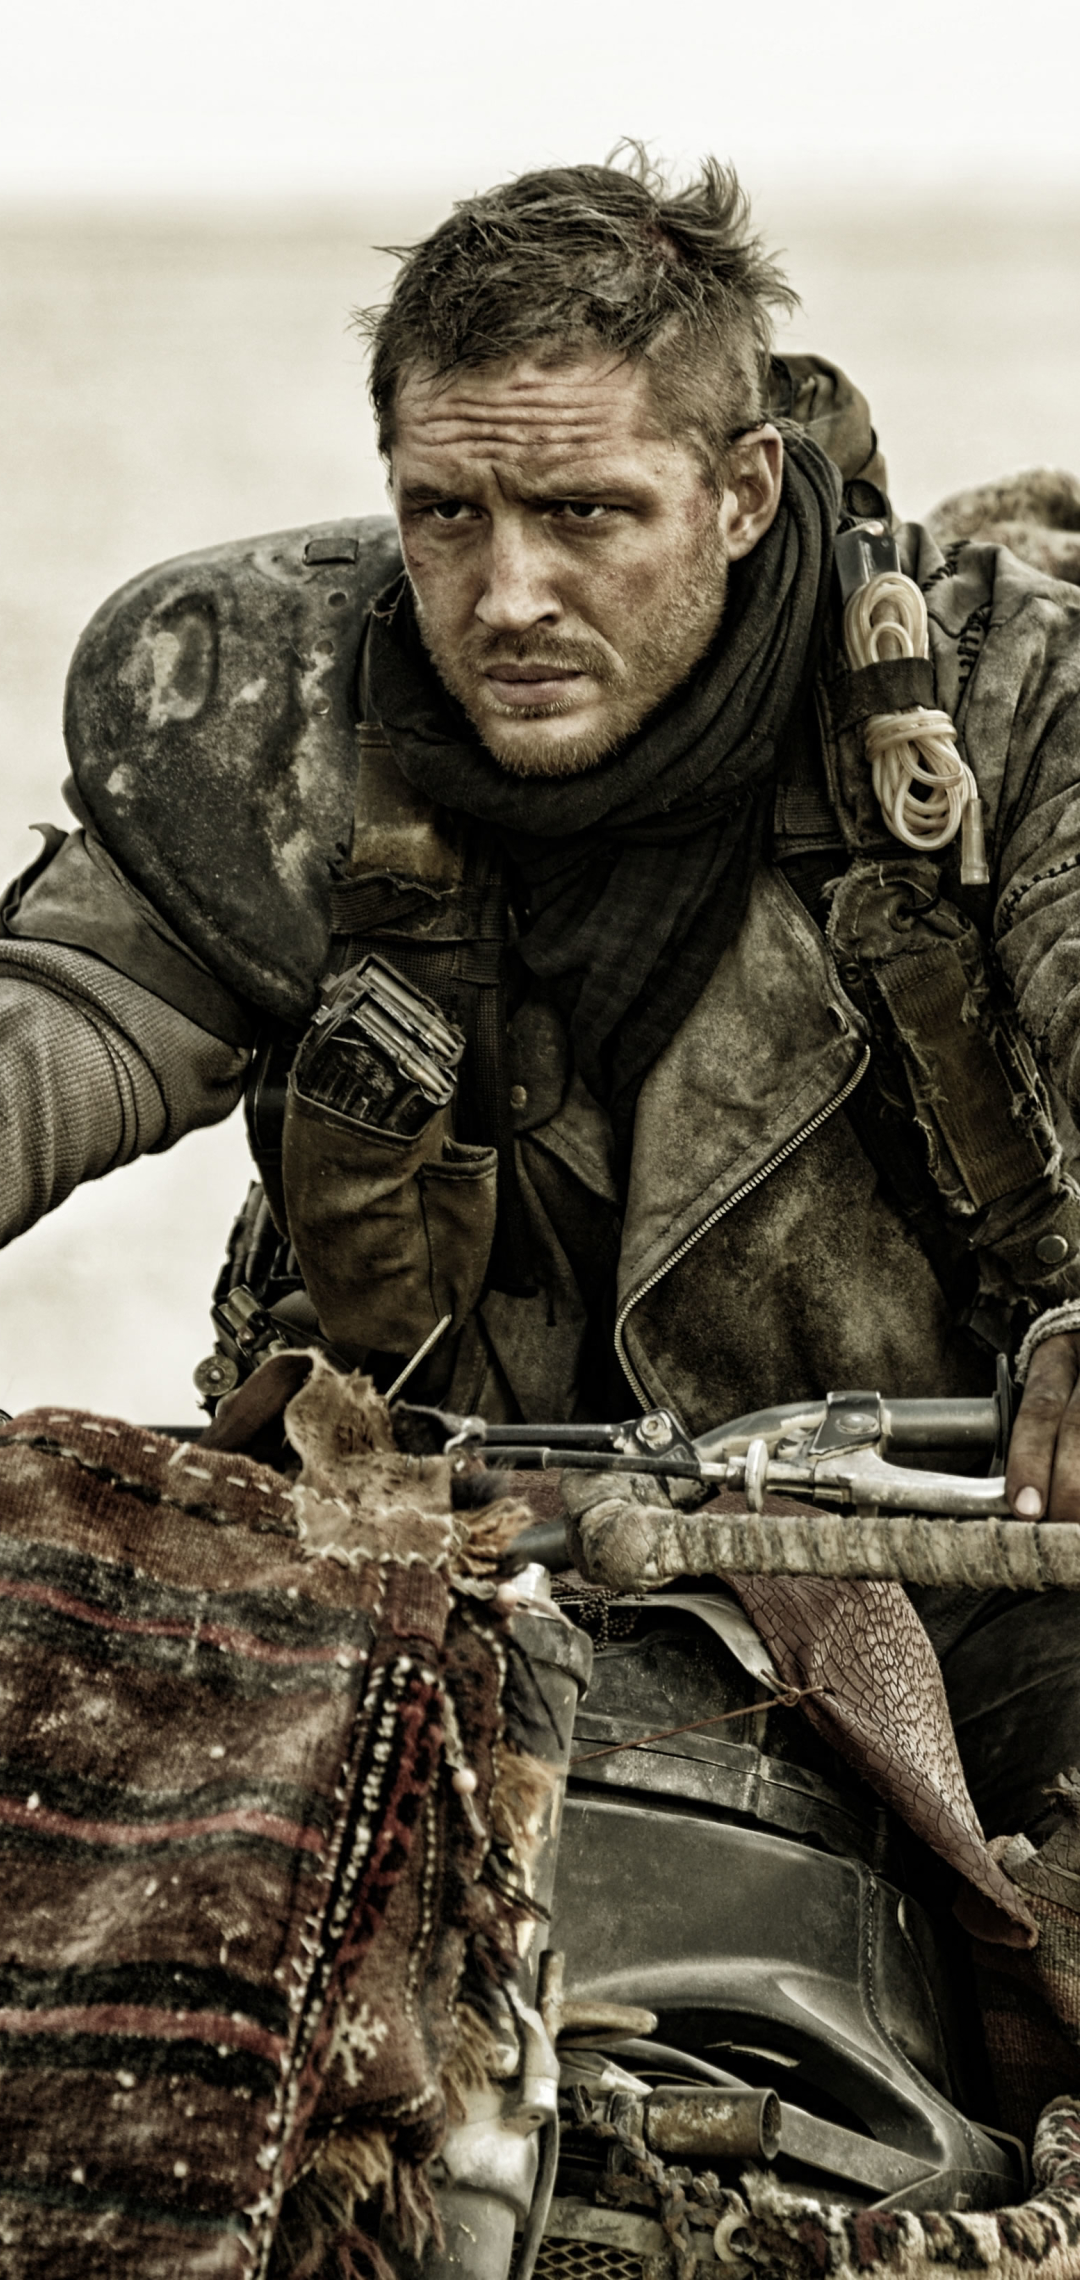 1080x2280 Mad Max Fury Road Tom Hardy Wallpaper One Plus 6 Huawei P20 Honor View 10 Vivo Y85 Oppo F7 Xiaomi Mi A2 Wallpaper Hd Movies 4k Wallpapers Images Photos And Background